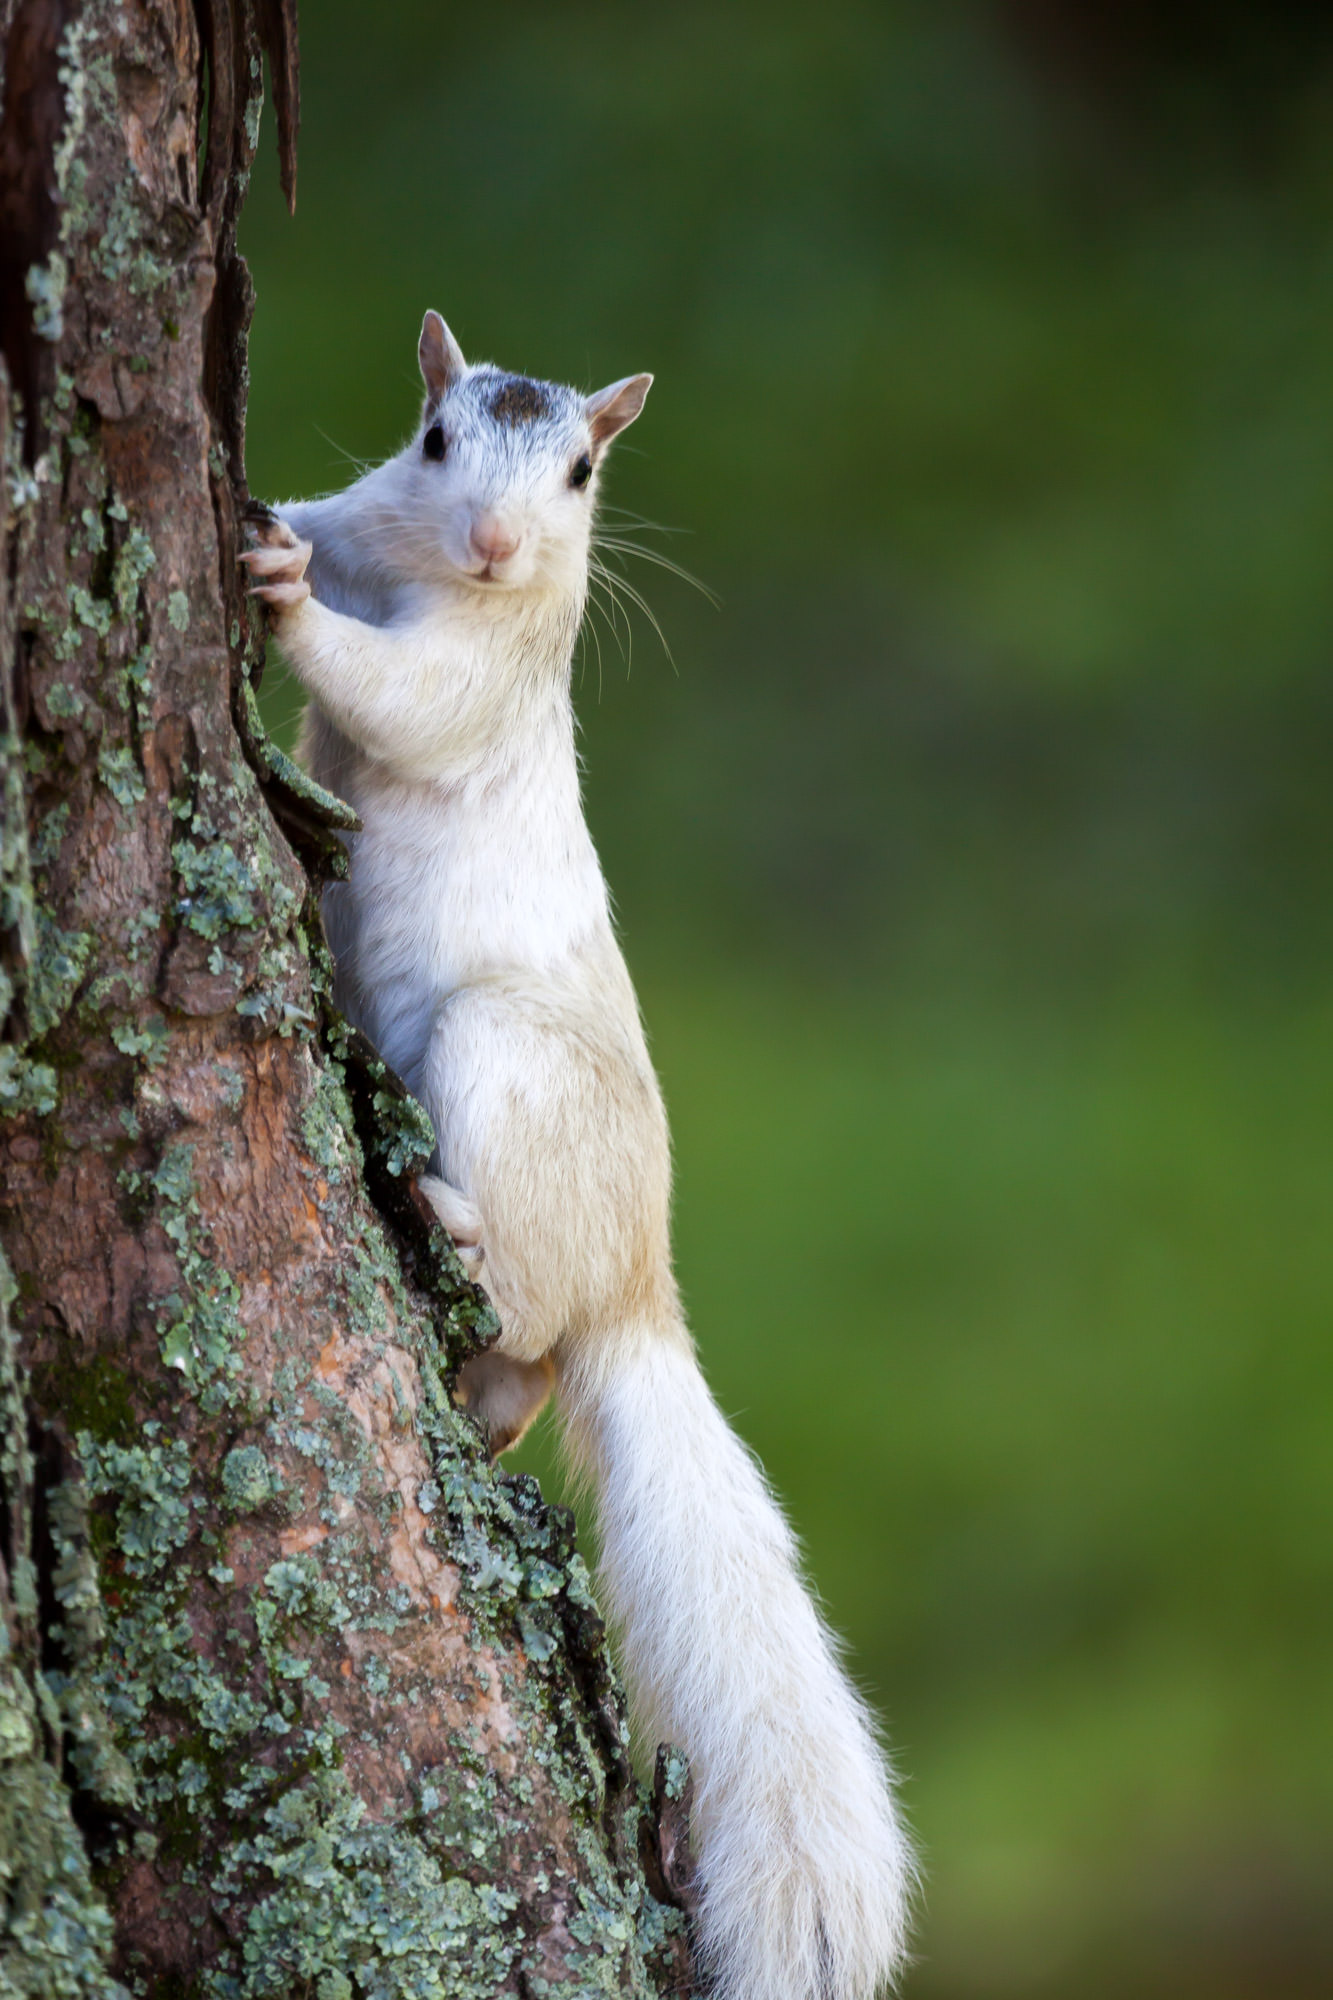 White Squirrel, North Carolina, Pisgah, Forest, Tree, limited edition, photograph, fine art, wildlife, photo